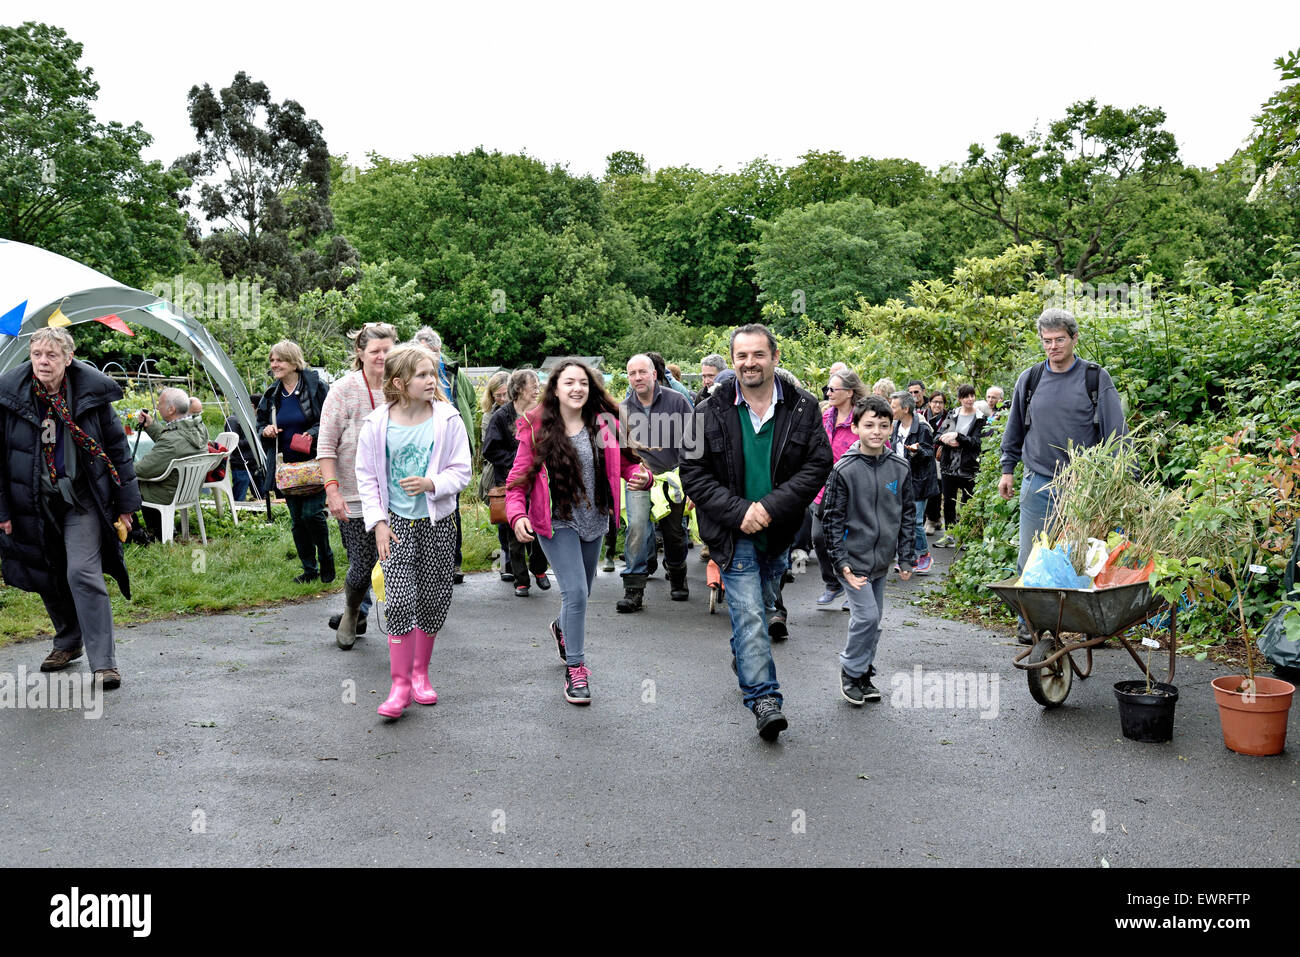 People rushing forward at the start of the plant sale Alexandra Palace Allotments London Borough of Harringay England - Stock Image